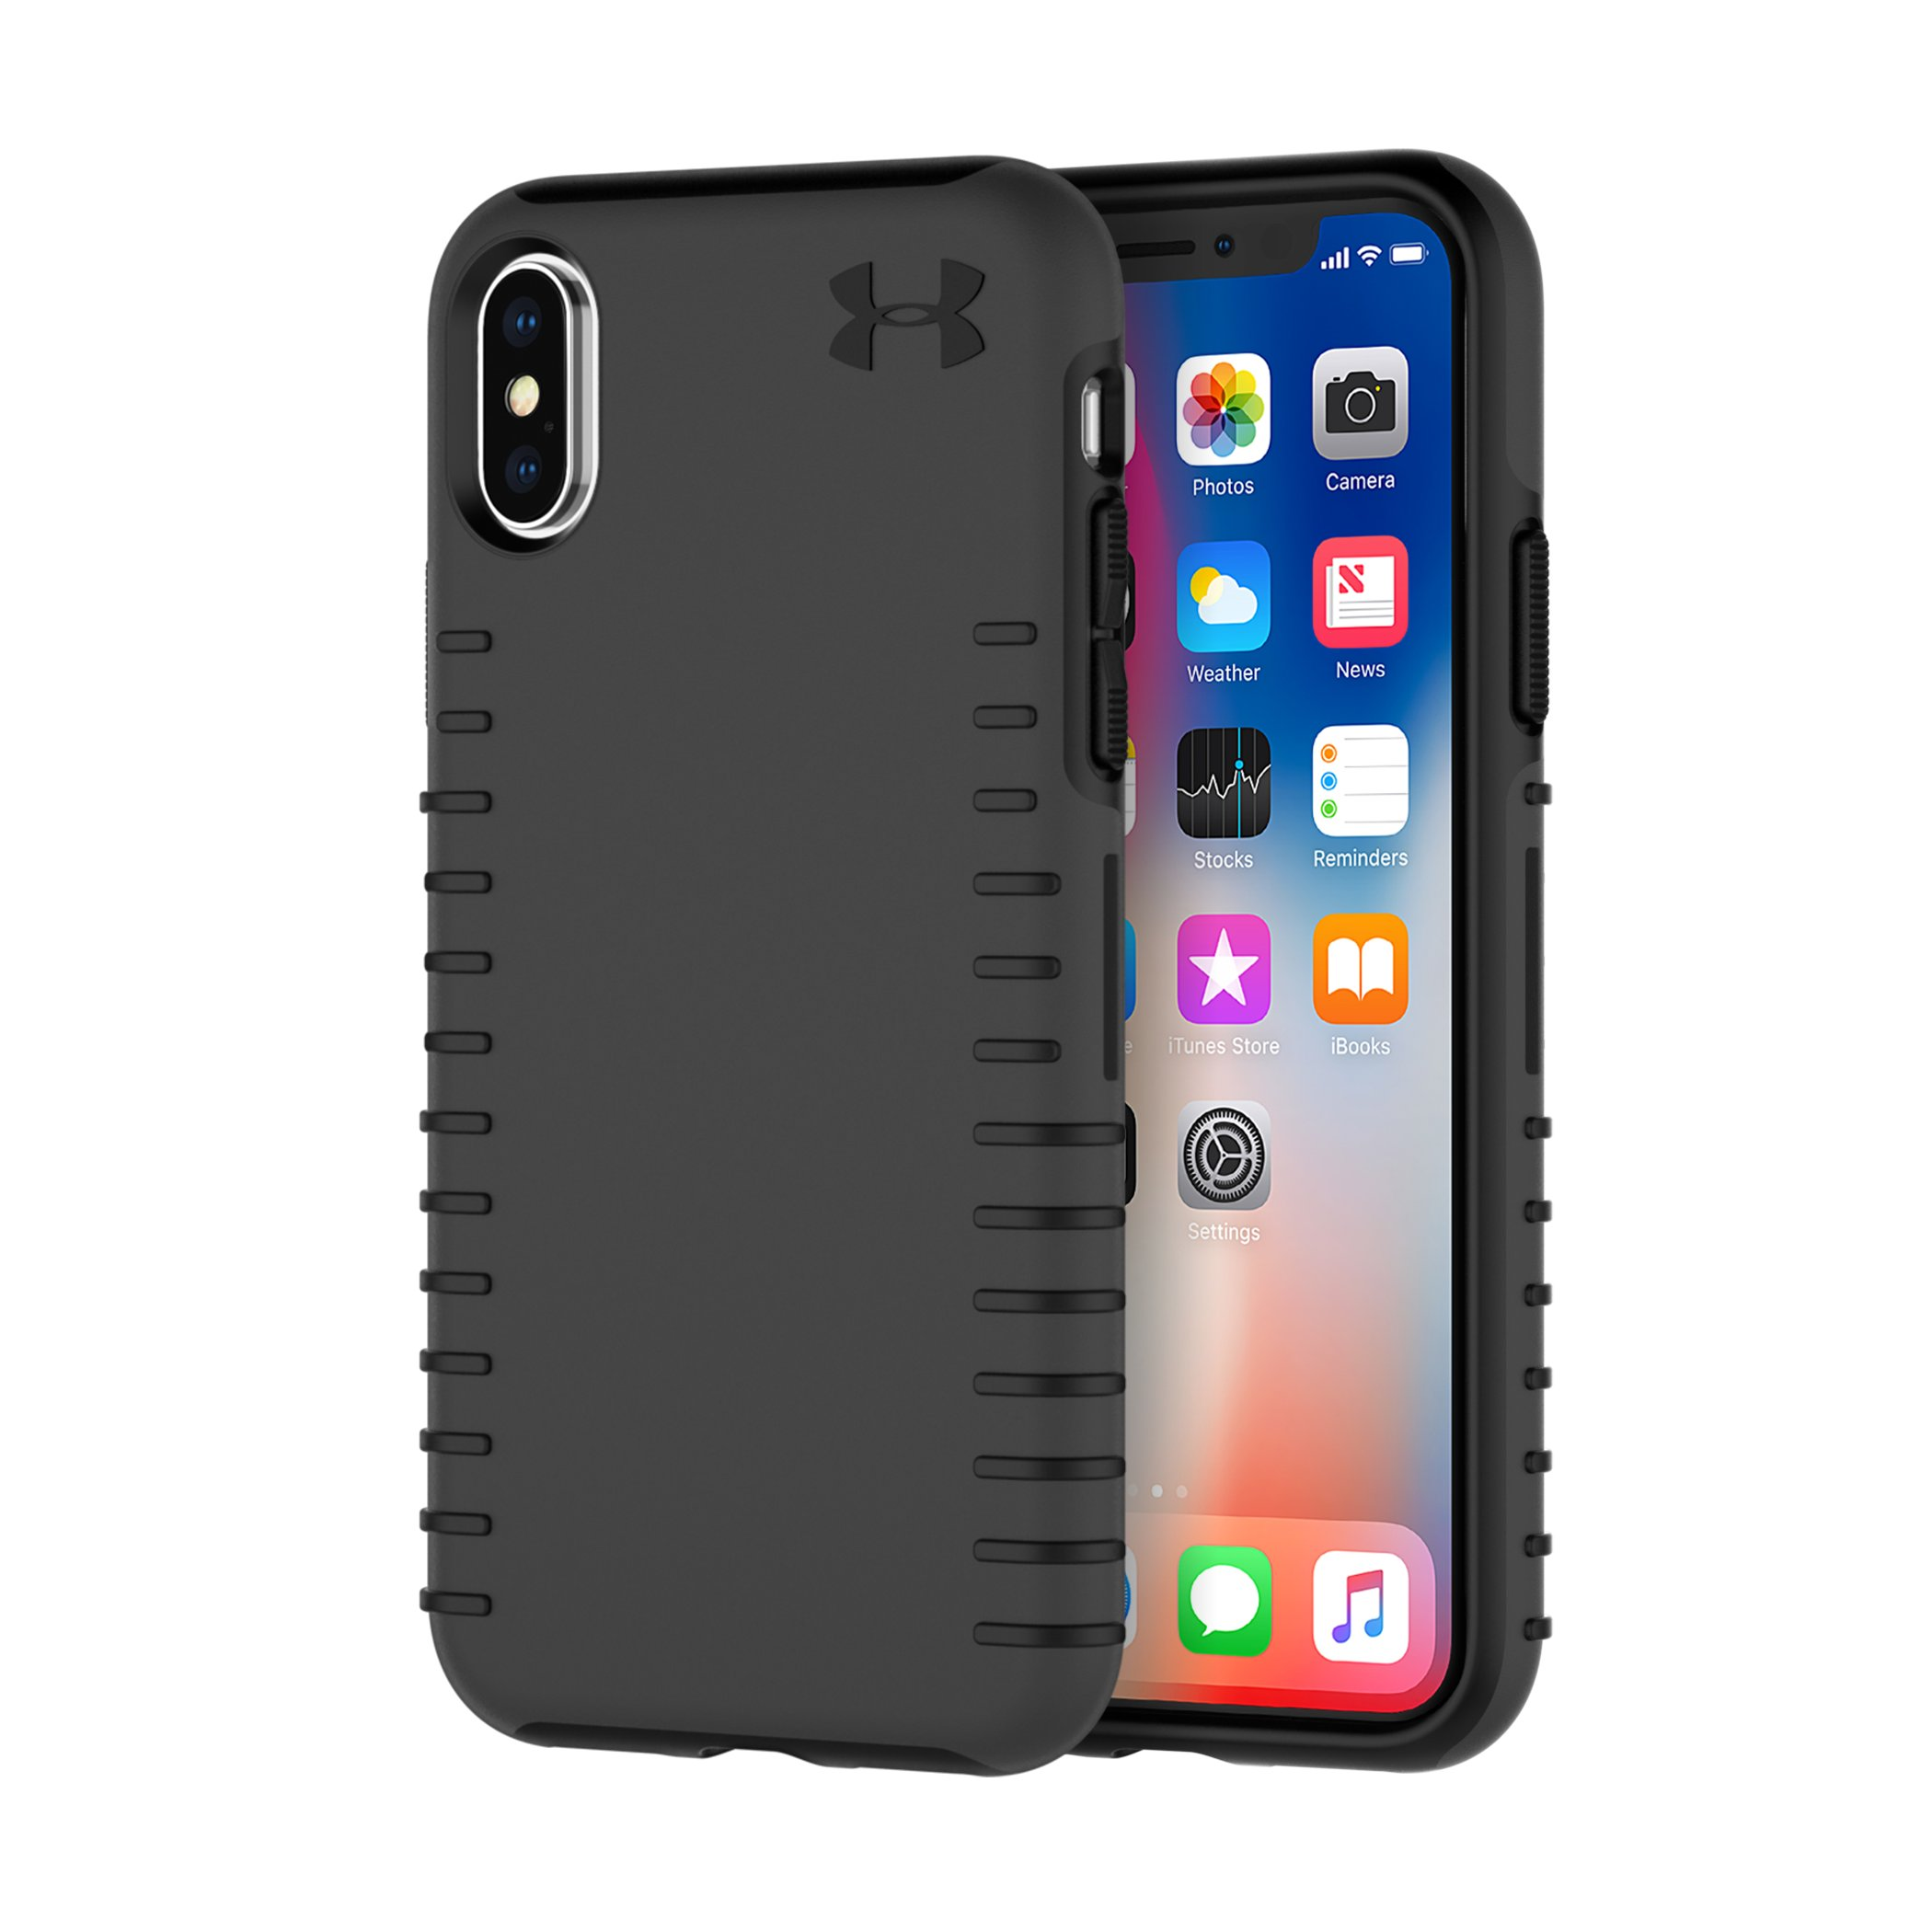 UA Protect Grip Case for iPhone X 3 Colors $39.99